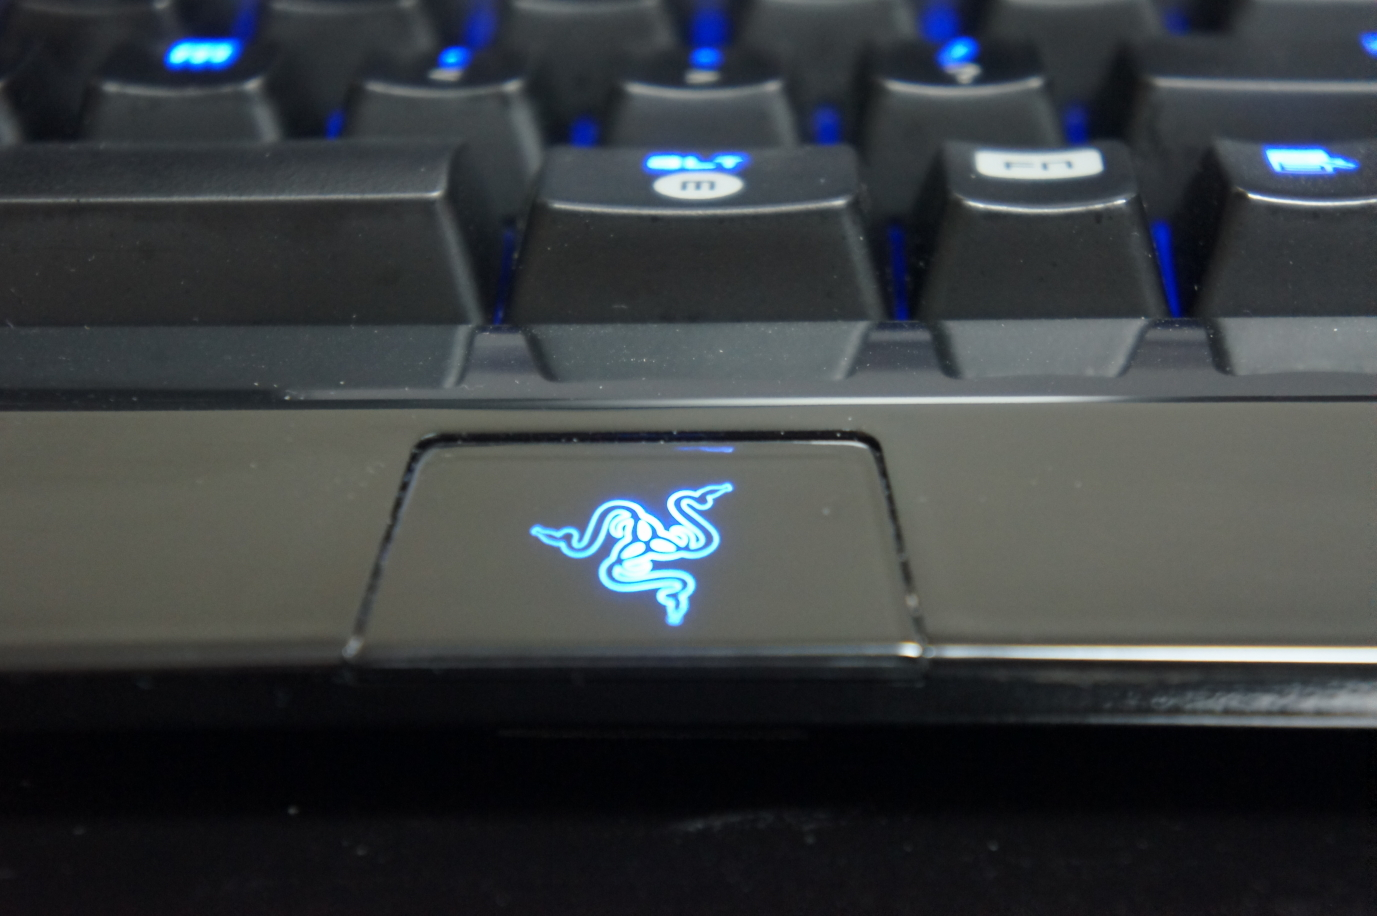 Razer BlackWidow をしばく